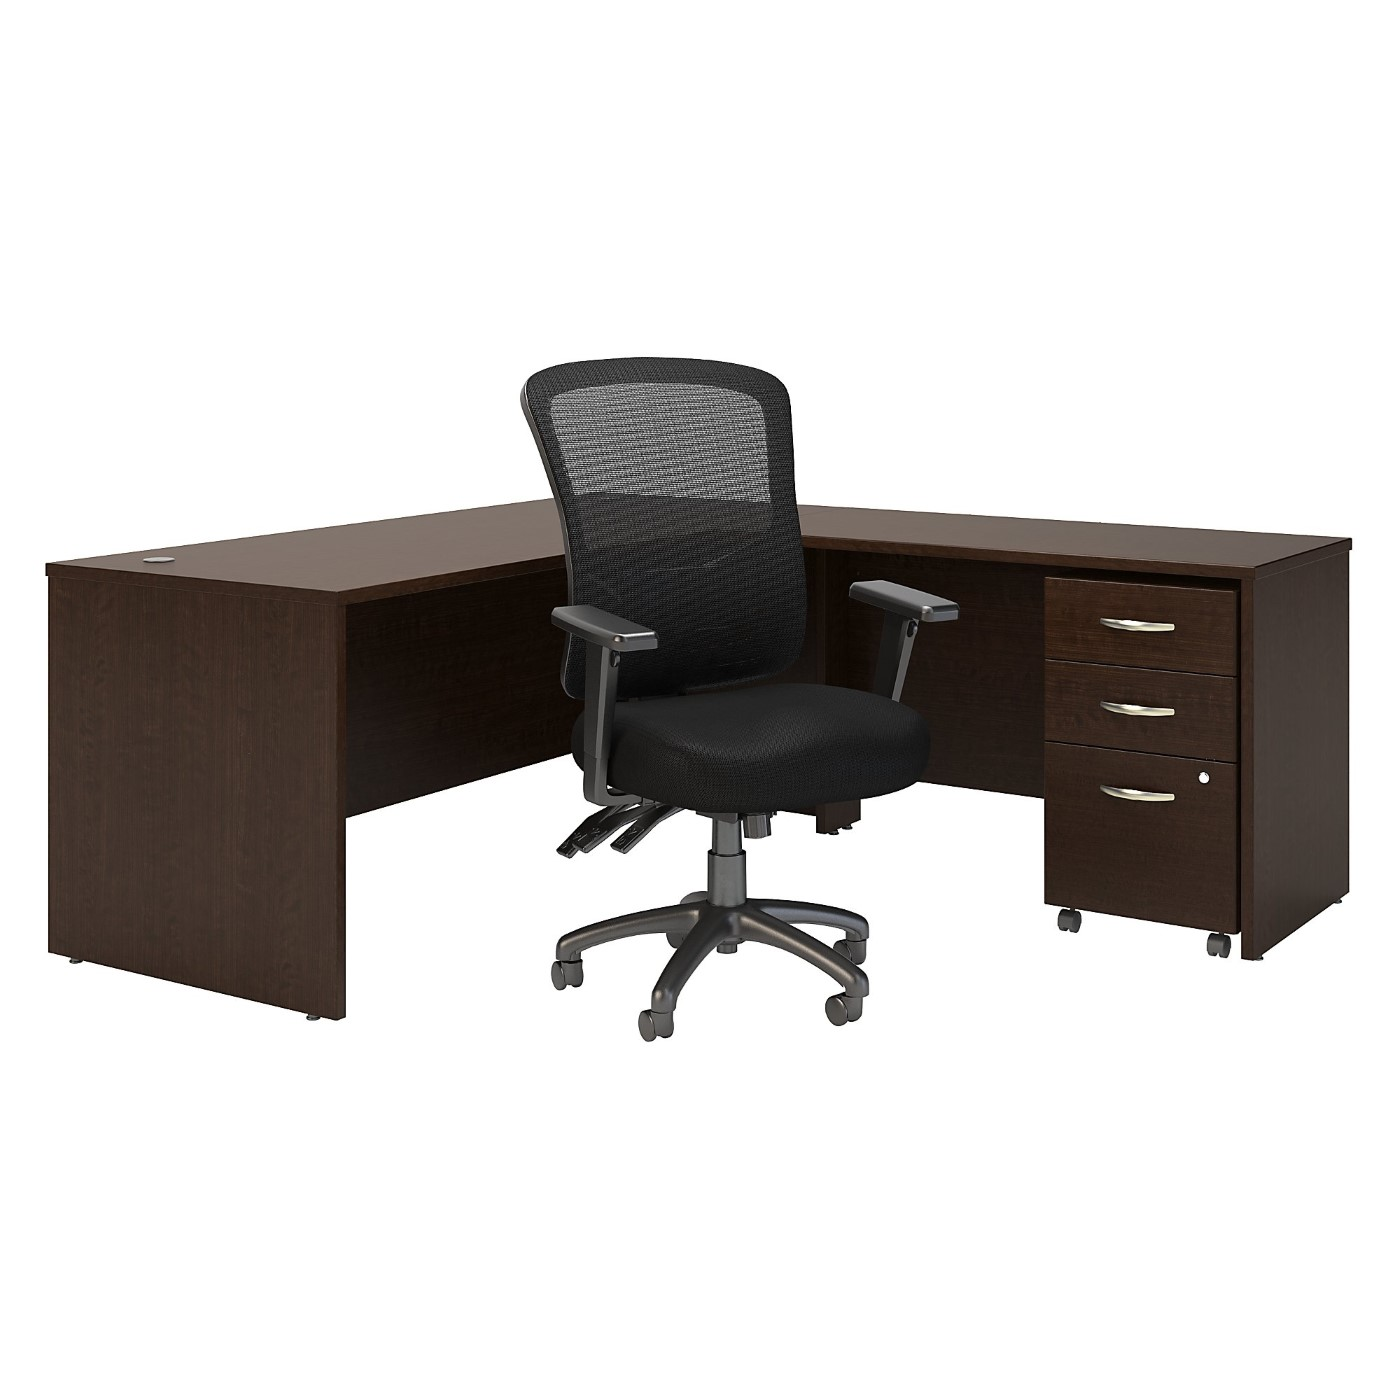 BUSH BUSINESS FURNITURE SERIES C 72W L SHAPED DESK WITH MOBILE FILE CABINET AND HIGH BACK MULTIFUNCTION OFFICE CHAIR. FREE SHIPPING